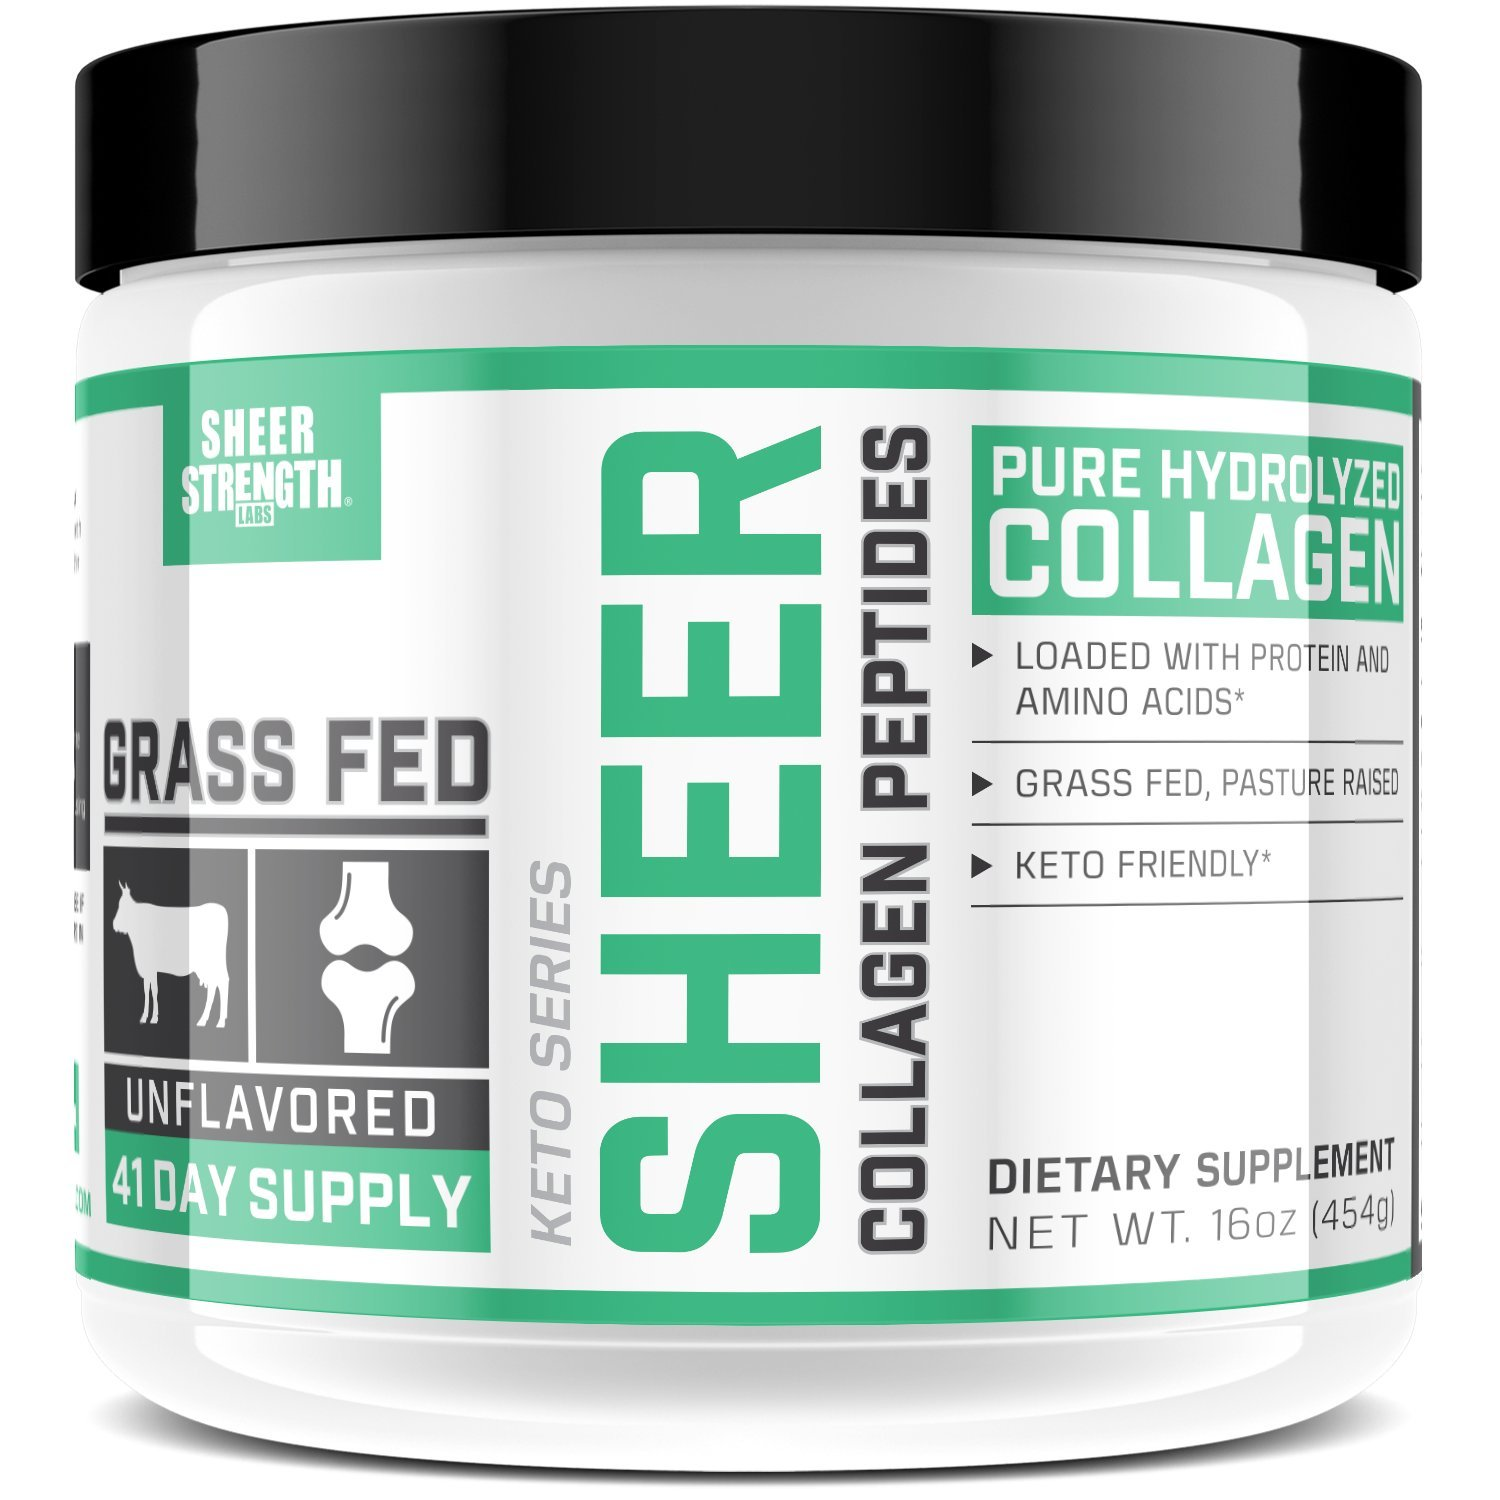 Pure Hydrolized Collagen Peptides Powder - Grass Fed, Gluten-Free, Non-GMO and Paleo Friendly - For Smooth Skin, Strong Hair and Healthy Bones/Joints/Nails - 16 oz Supplement - Sheer Strength Labs